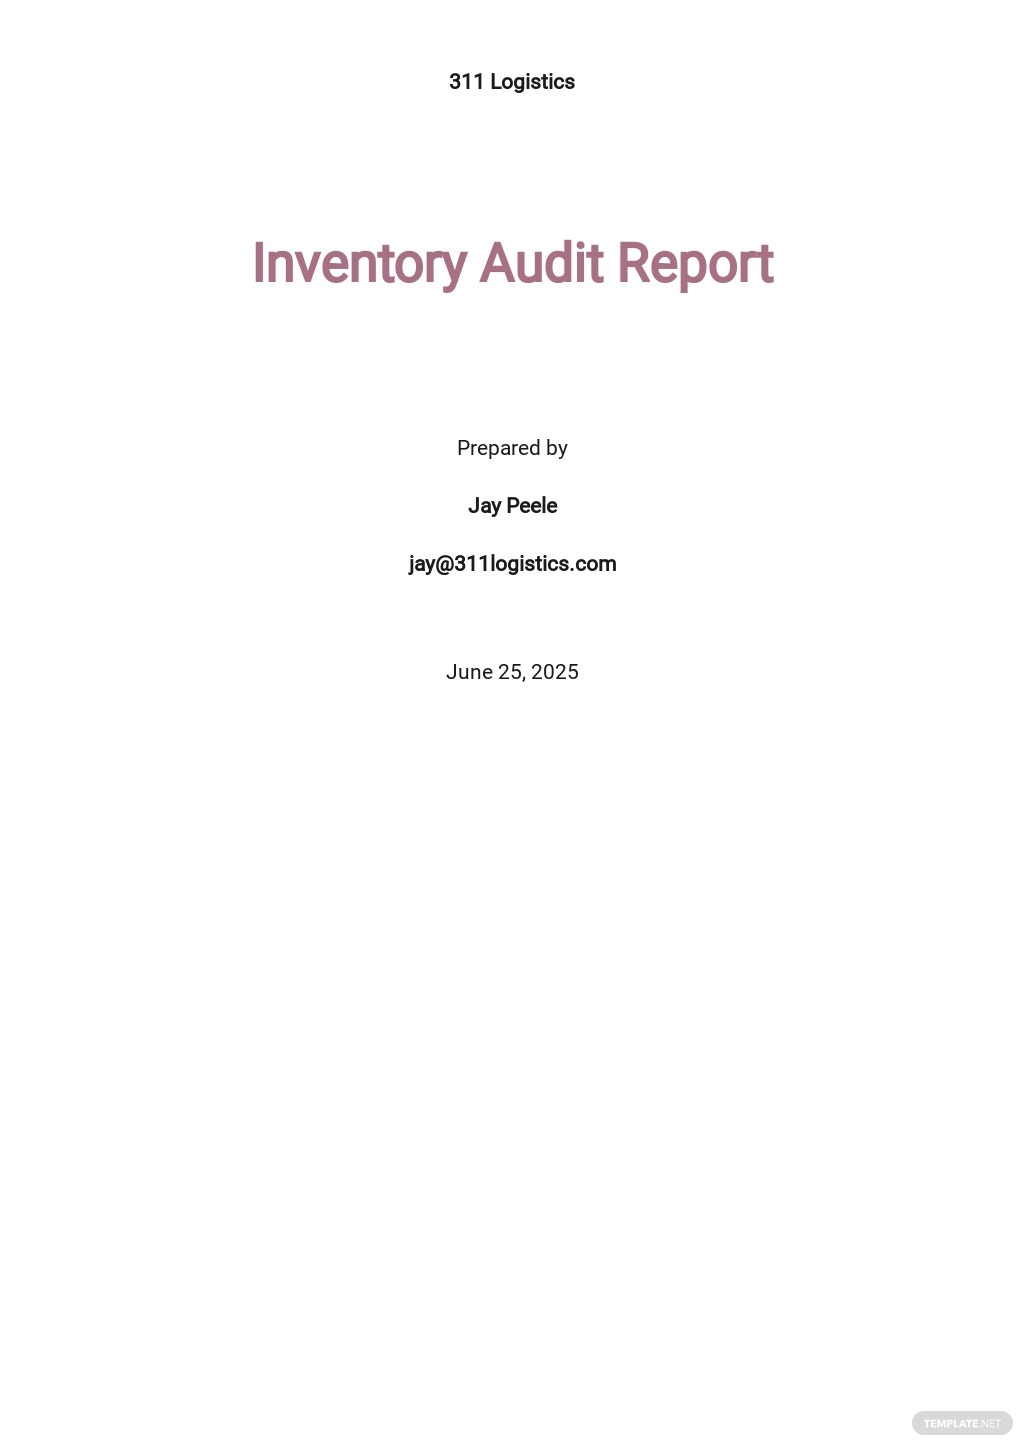 Inventory Audit Report Template [Free PDF] - Google Docs, Word